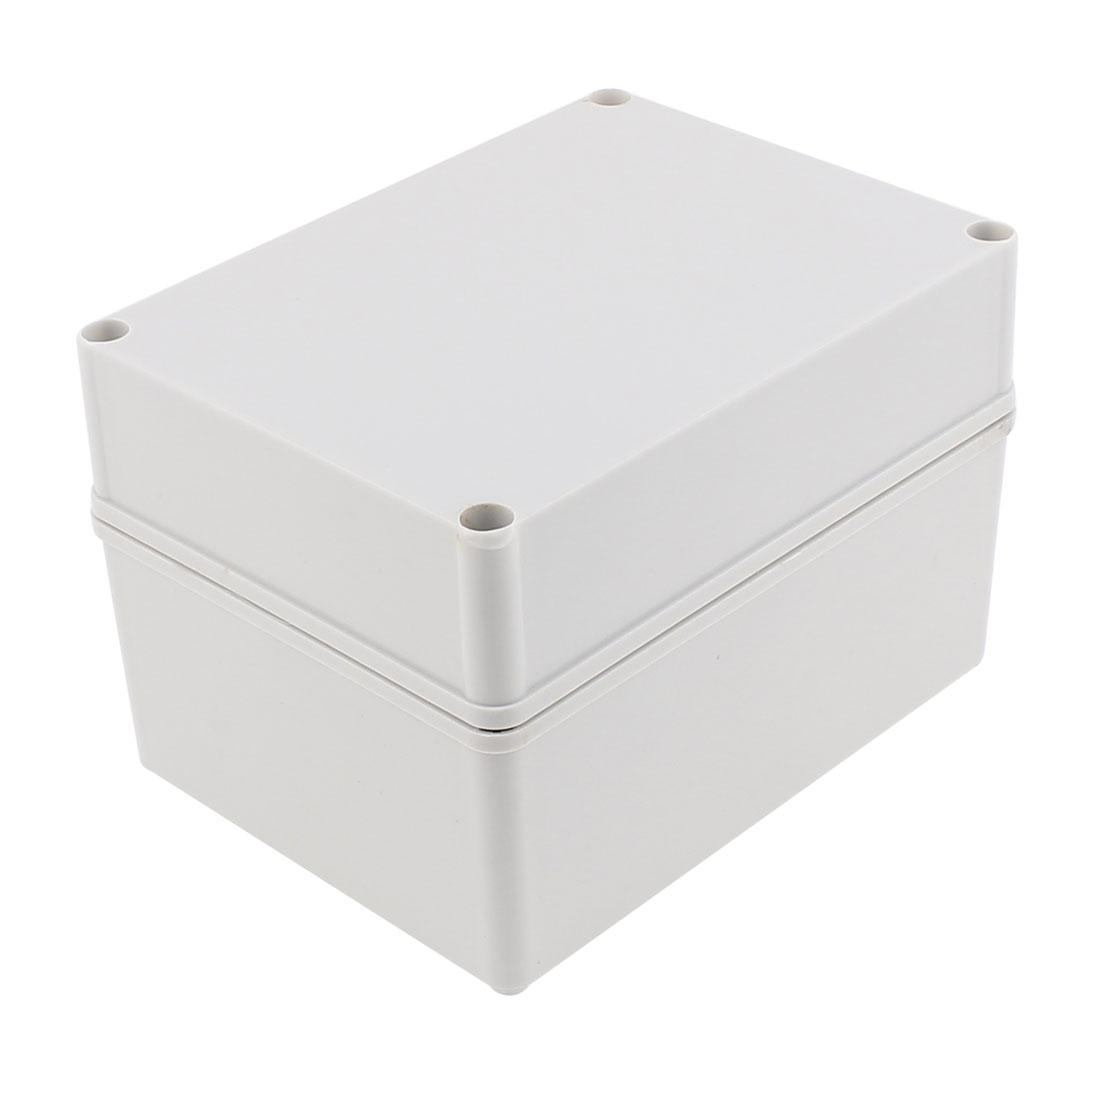 200 x 150 x 130mm Dustproof IP65 Junction Box Terminal Connecting Box Enclosure